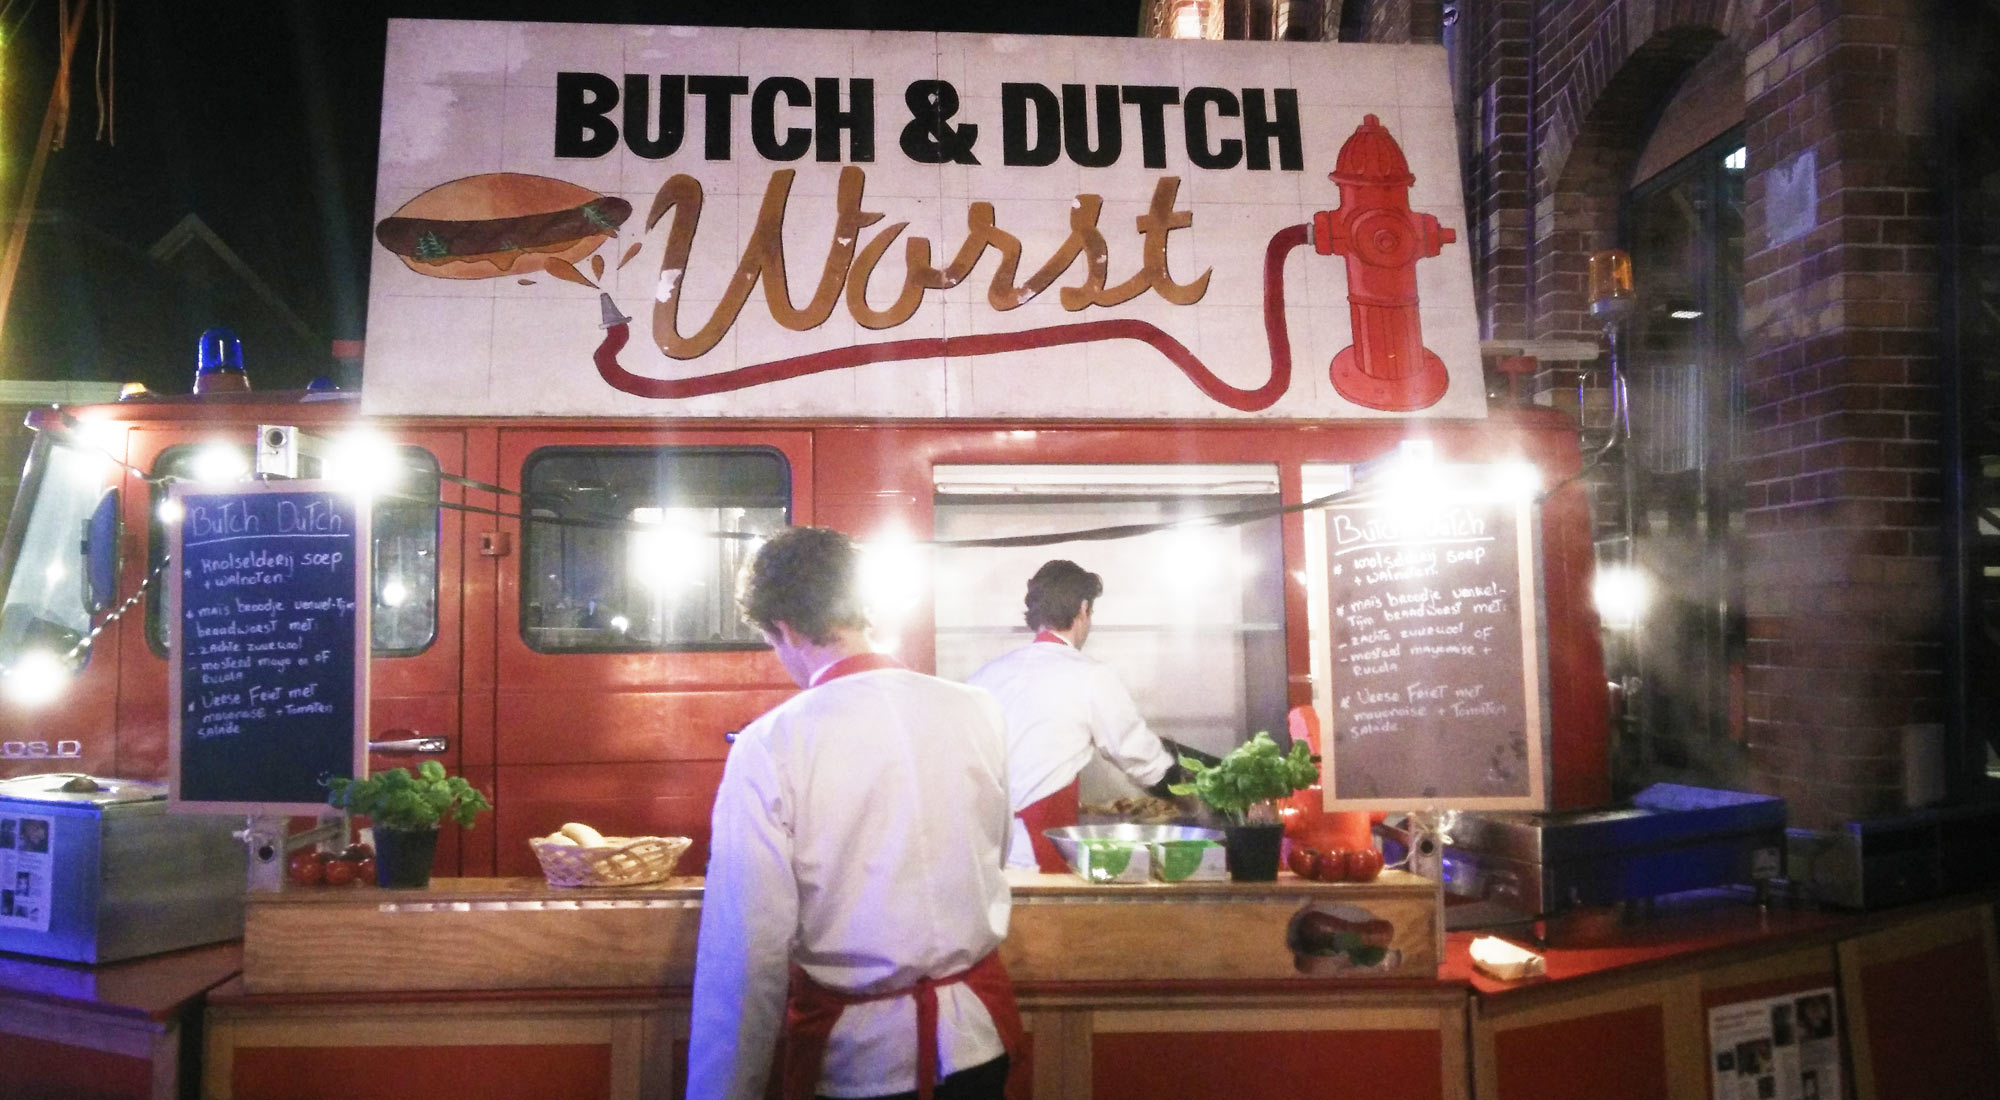 food stand Butch & Dutch Worst